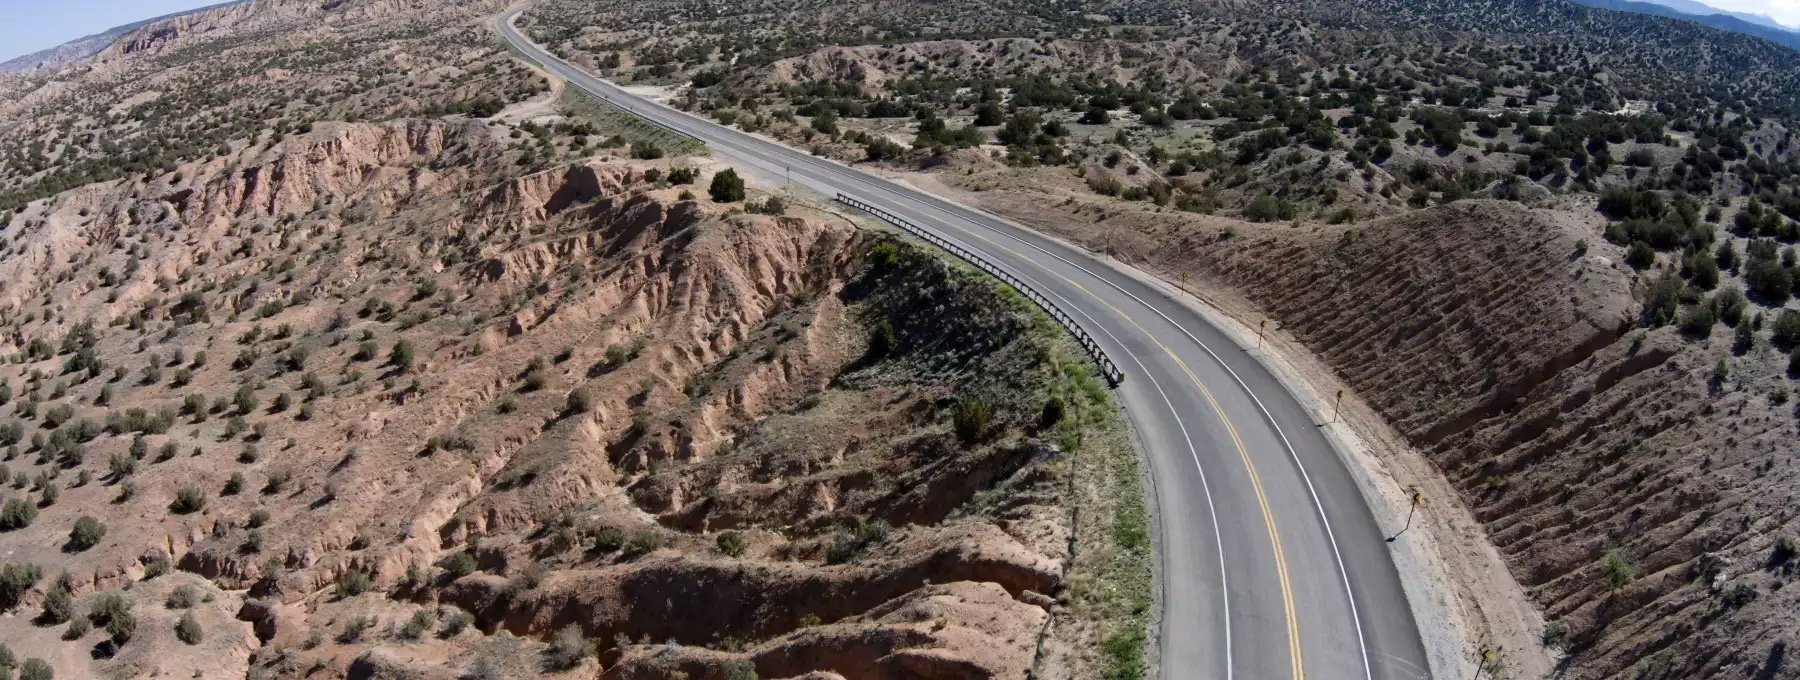 The High Road to Taos Scenic Byway